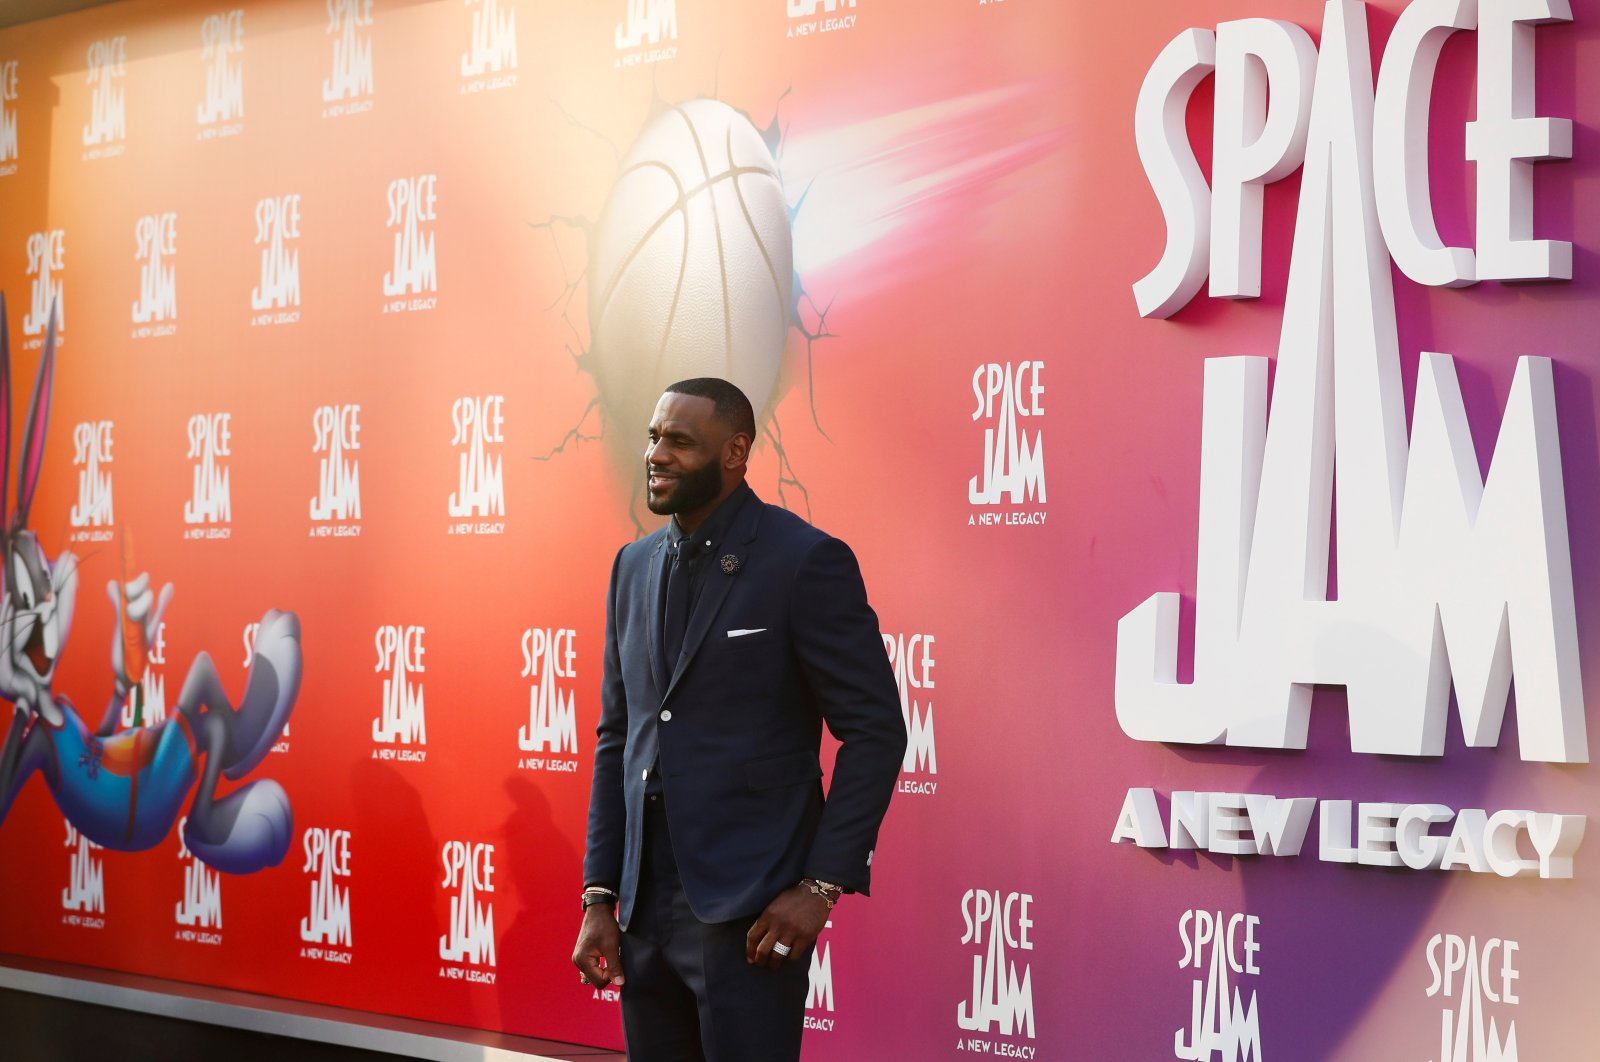 """Cast member LeBron James attends the premiere for the film """"Space Jam: A New Legacy"""" in Los Angeles, California, U.S., July 12, 2021. (Reuters Photo)"""